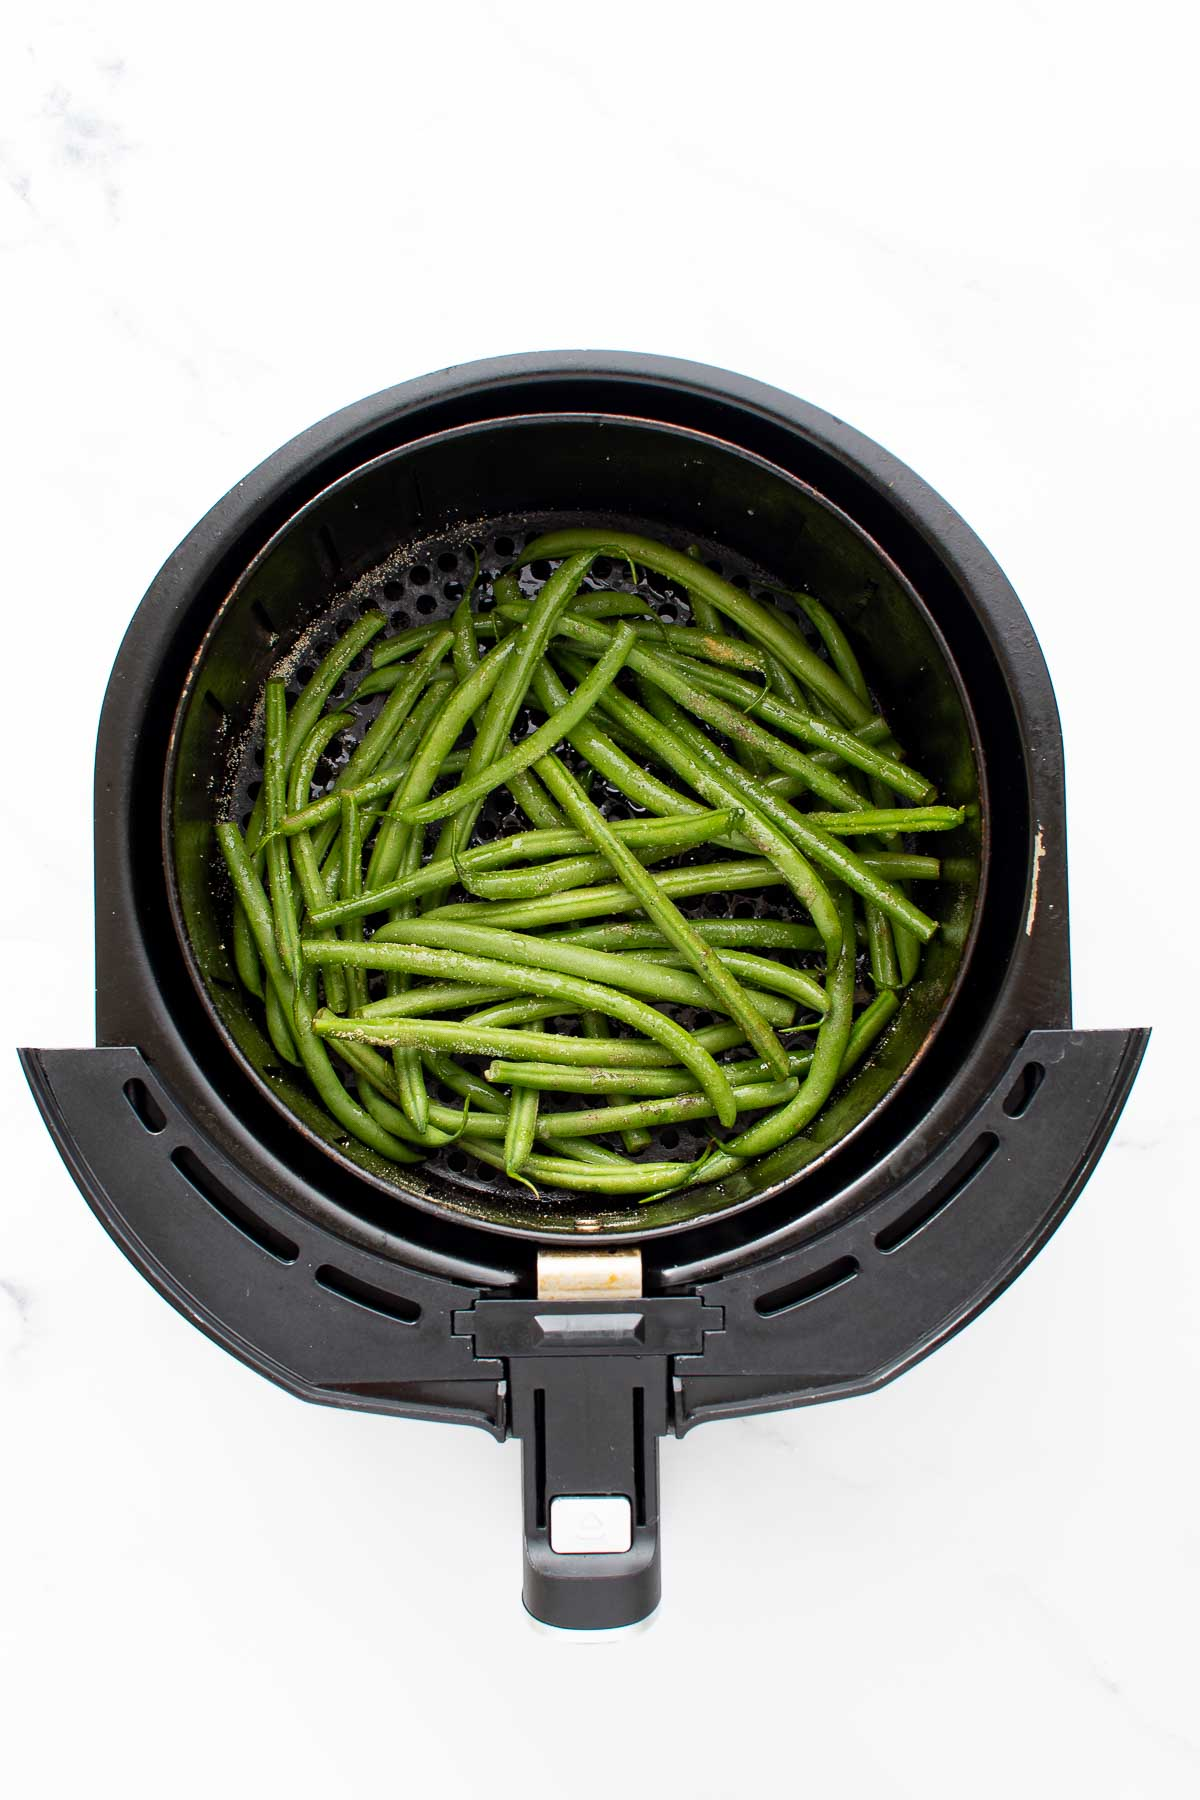 Raw green beans in air fryer.